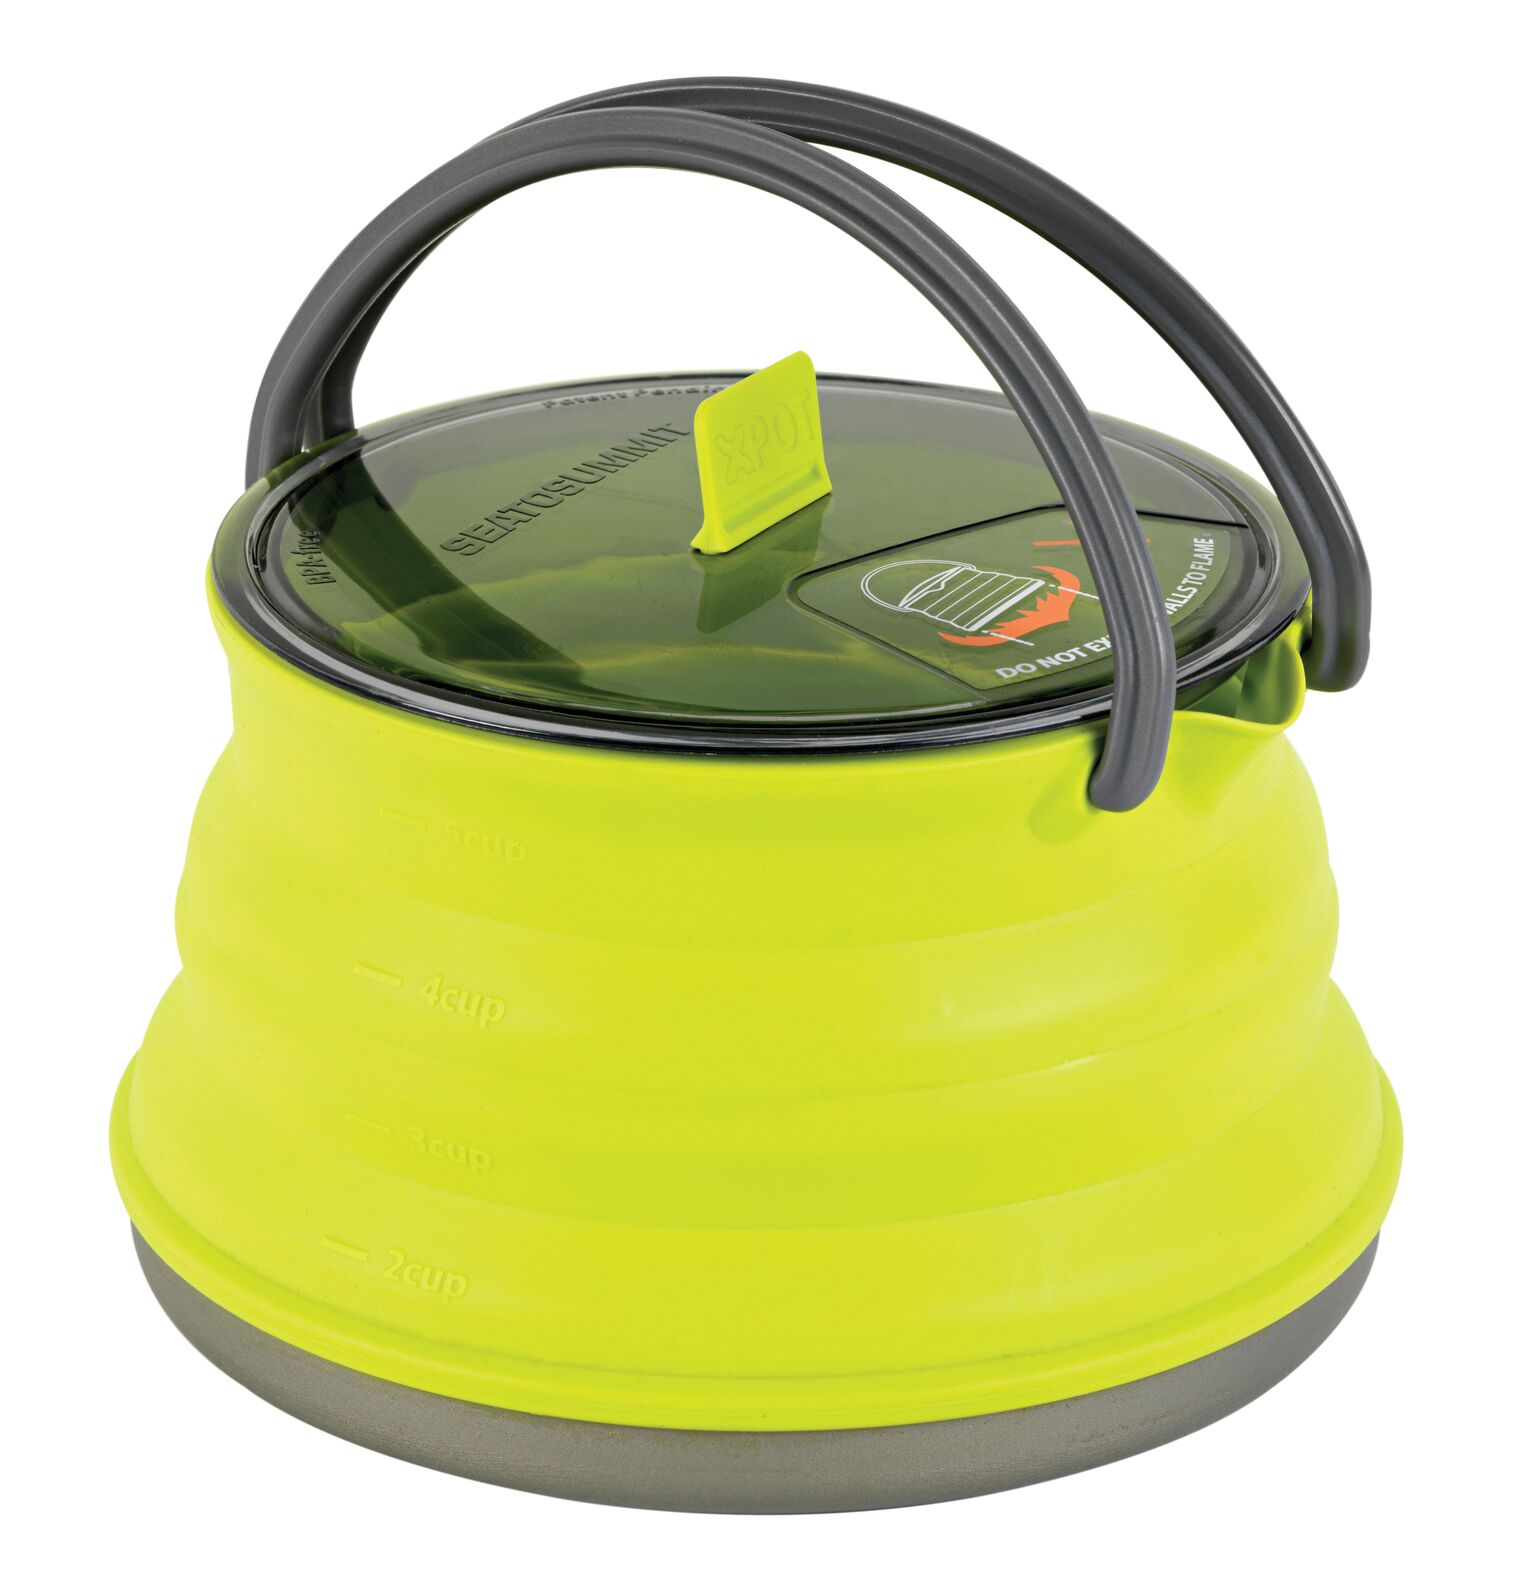 Seatosummit Xpot Kettle 1,3L Lime